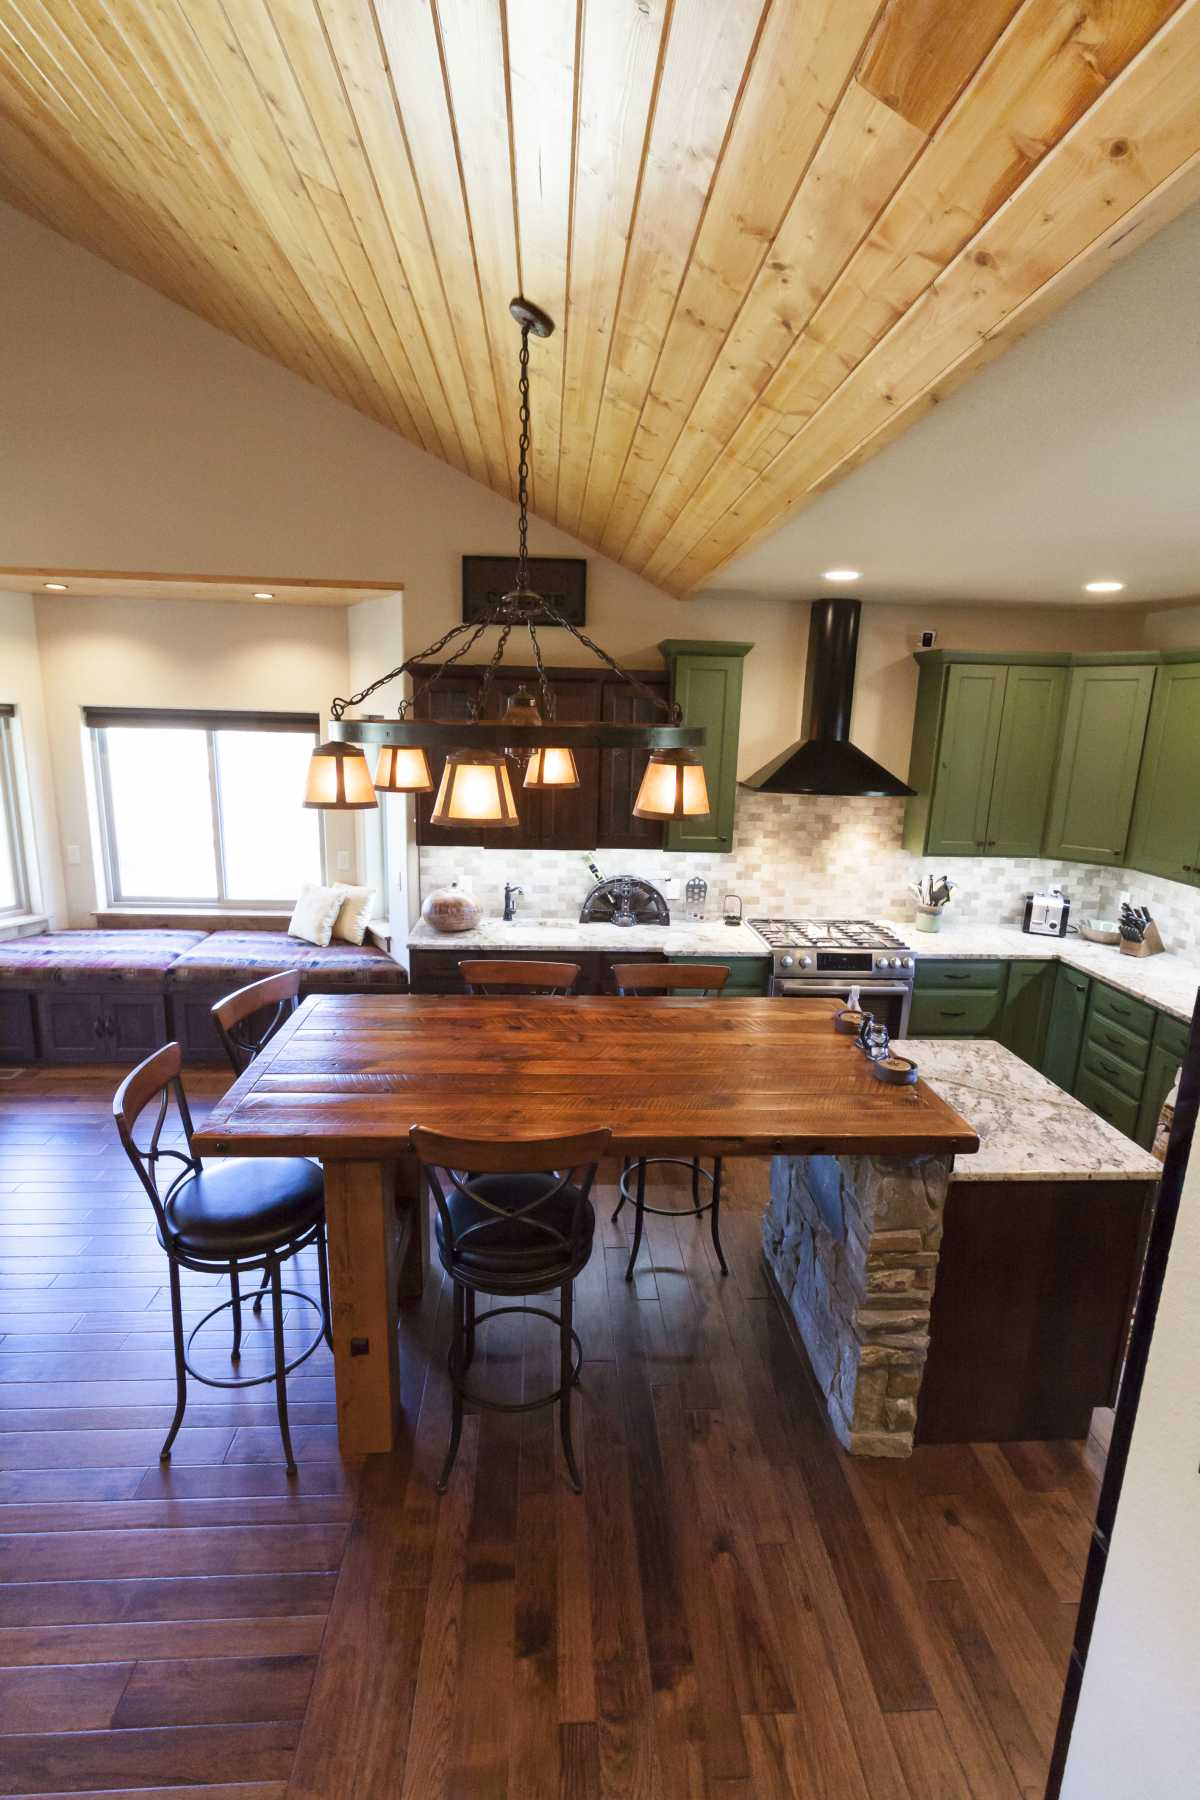 An open concept kitchen and living area is complimented by the high ceilings.